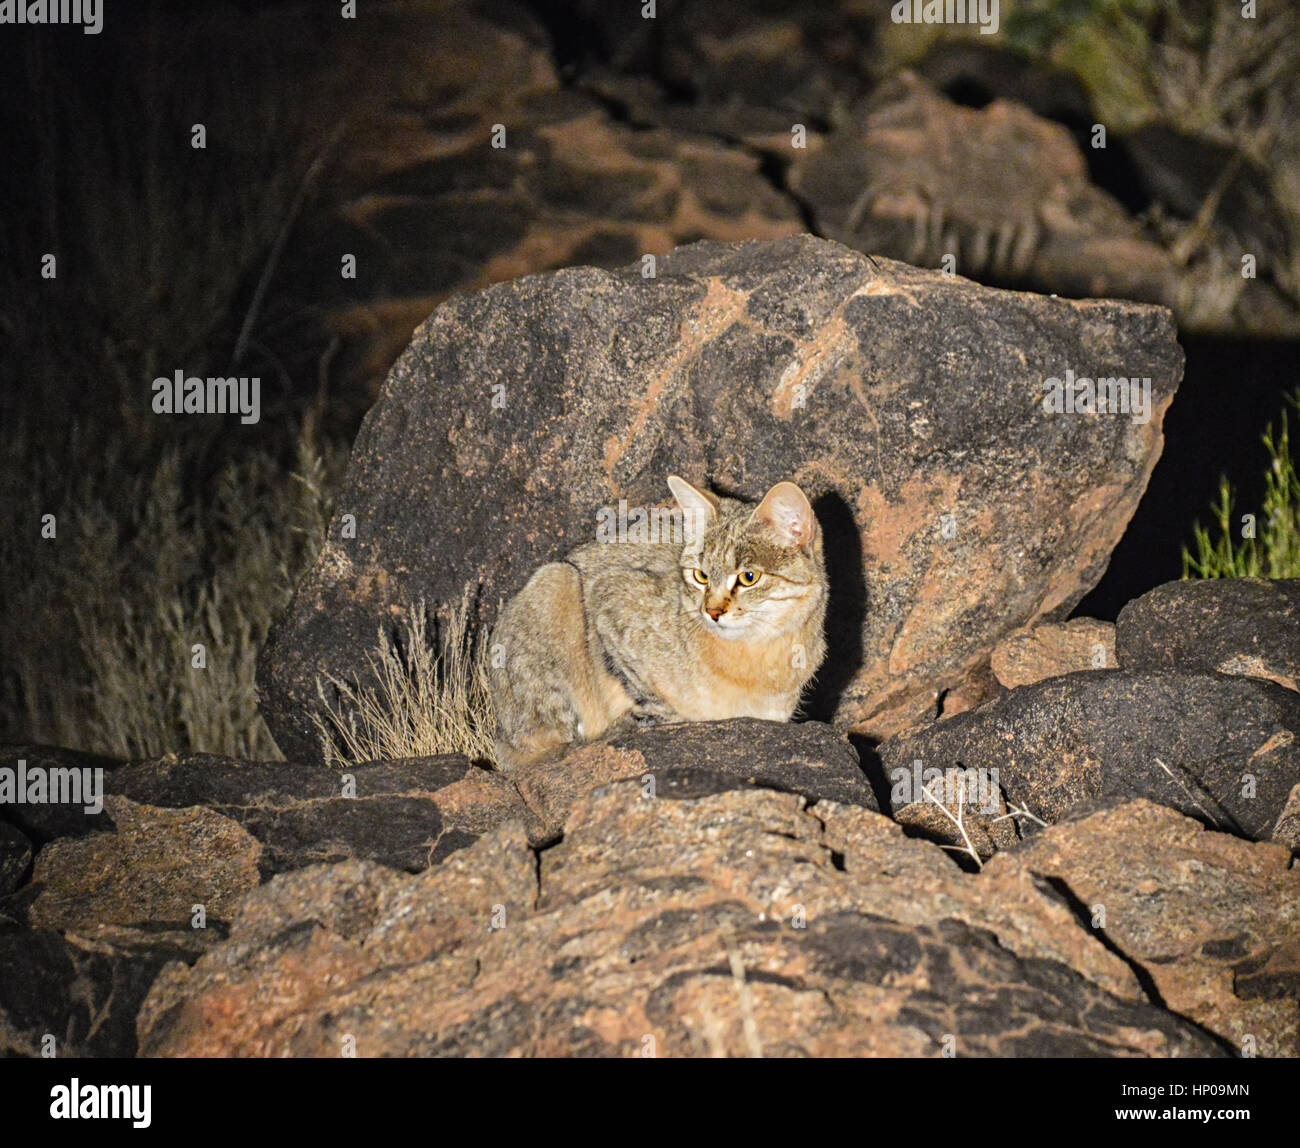 An African Wildcat seen at night crouched on rocks in the Southern African savanna - Stock Image